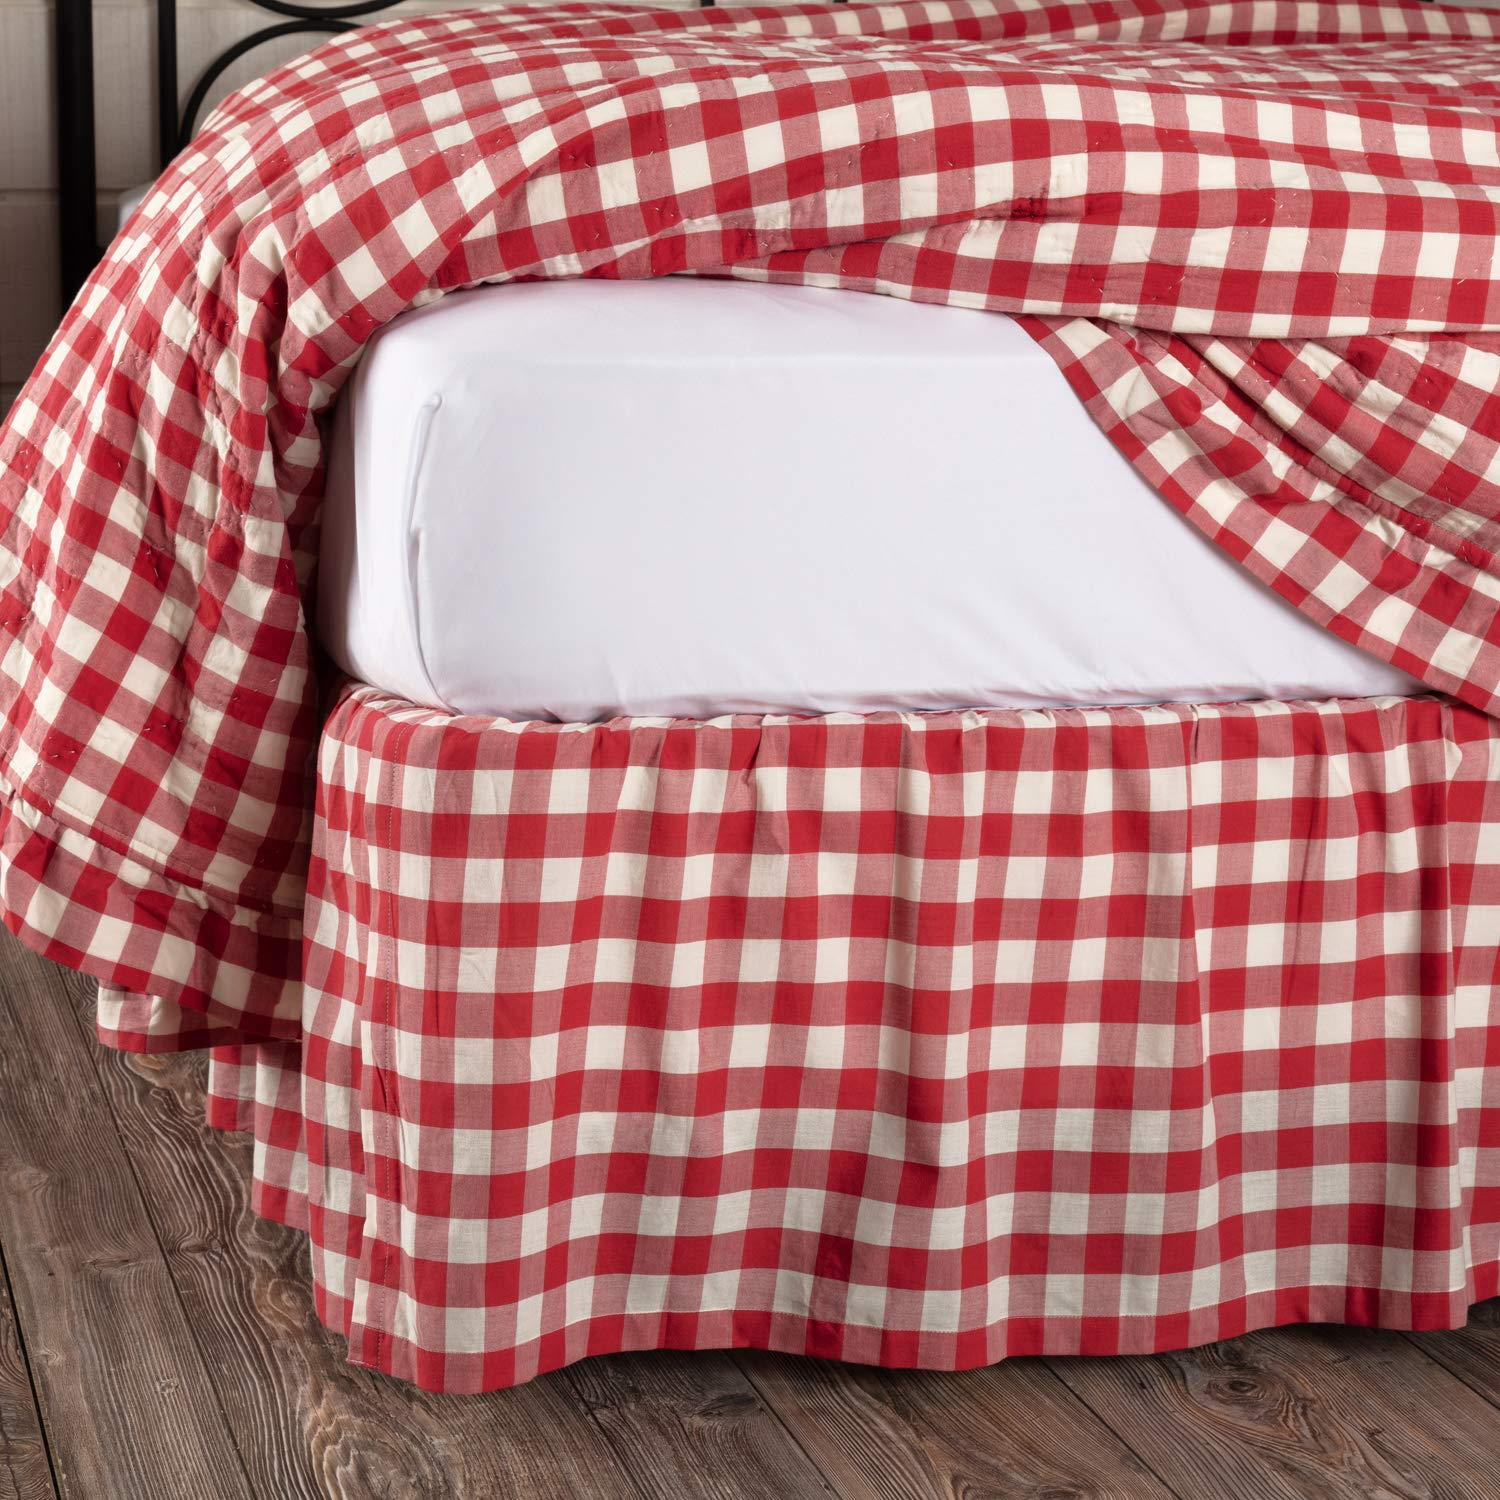 VHC Brands Farmhouse Annie Cotton Split Corners Gathered Buffalo Check Twin Bed Skirt Red Country